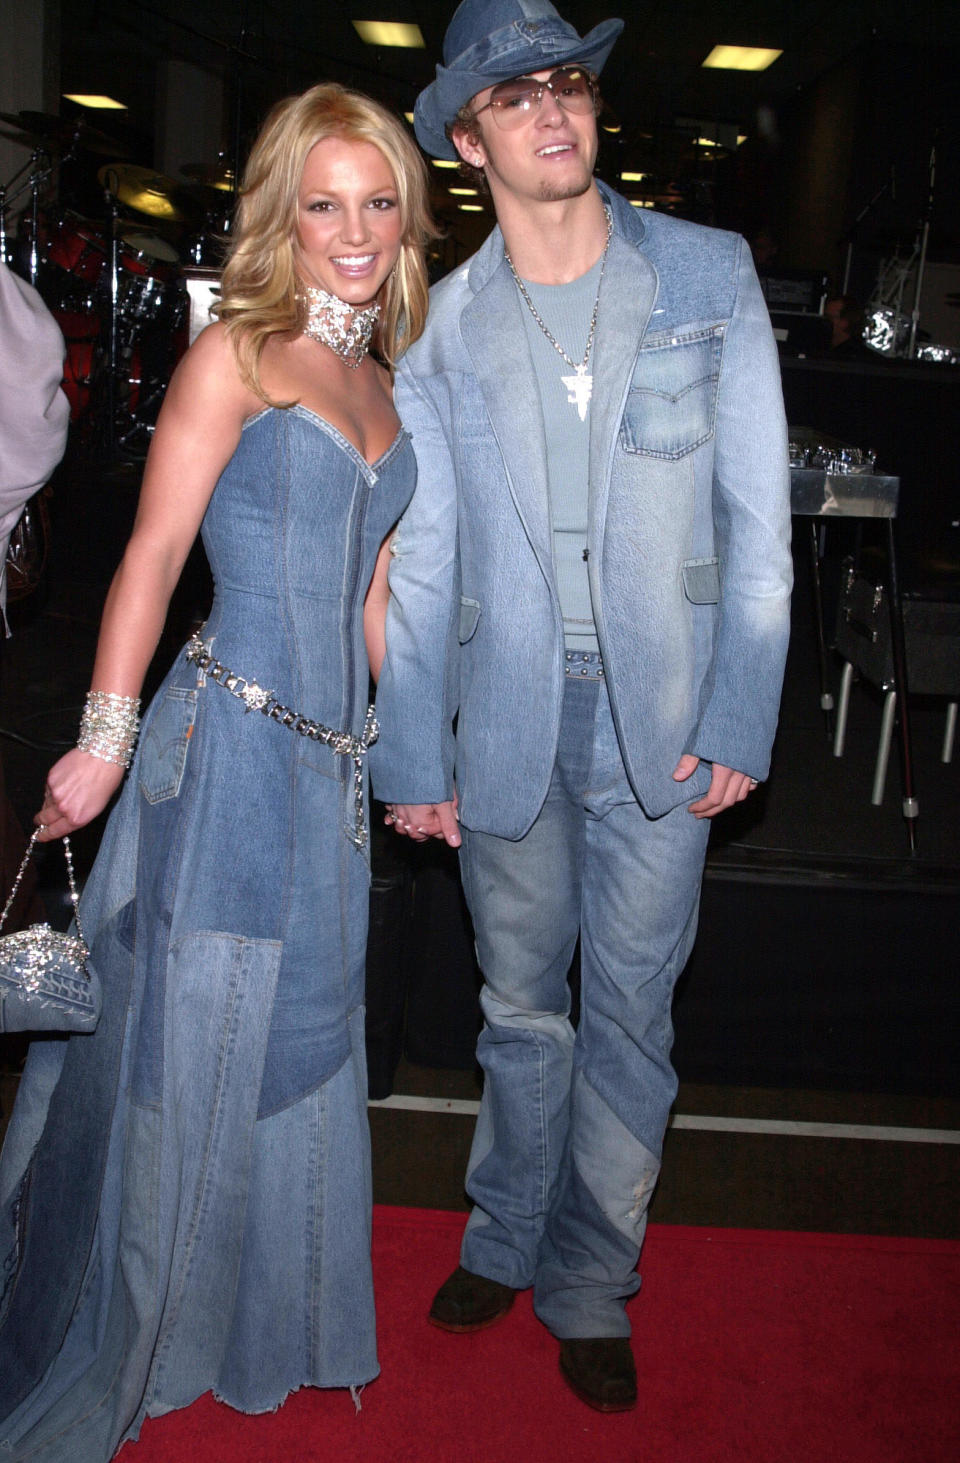 """<p>Spears and Timberlake were the undisputed prom Queen and King of the music world in the late 90s. The pair met as kids while working on """"The Mickey Mouse Club"""" and dated publicly from 1999 to 2002 as their careers soared to superstardom. <em>(Image via Getty Images)</em></p>"""